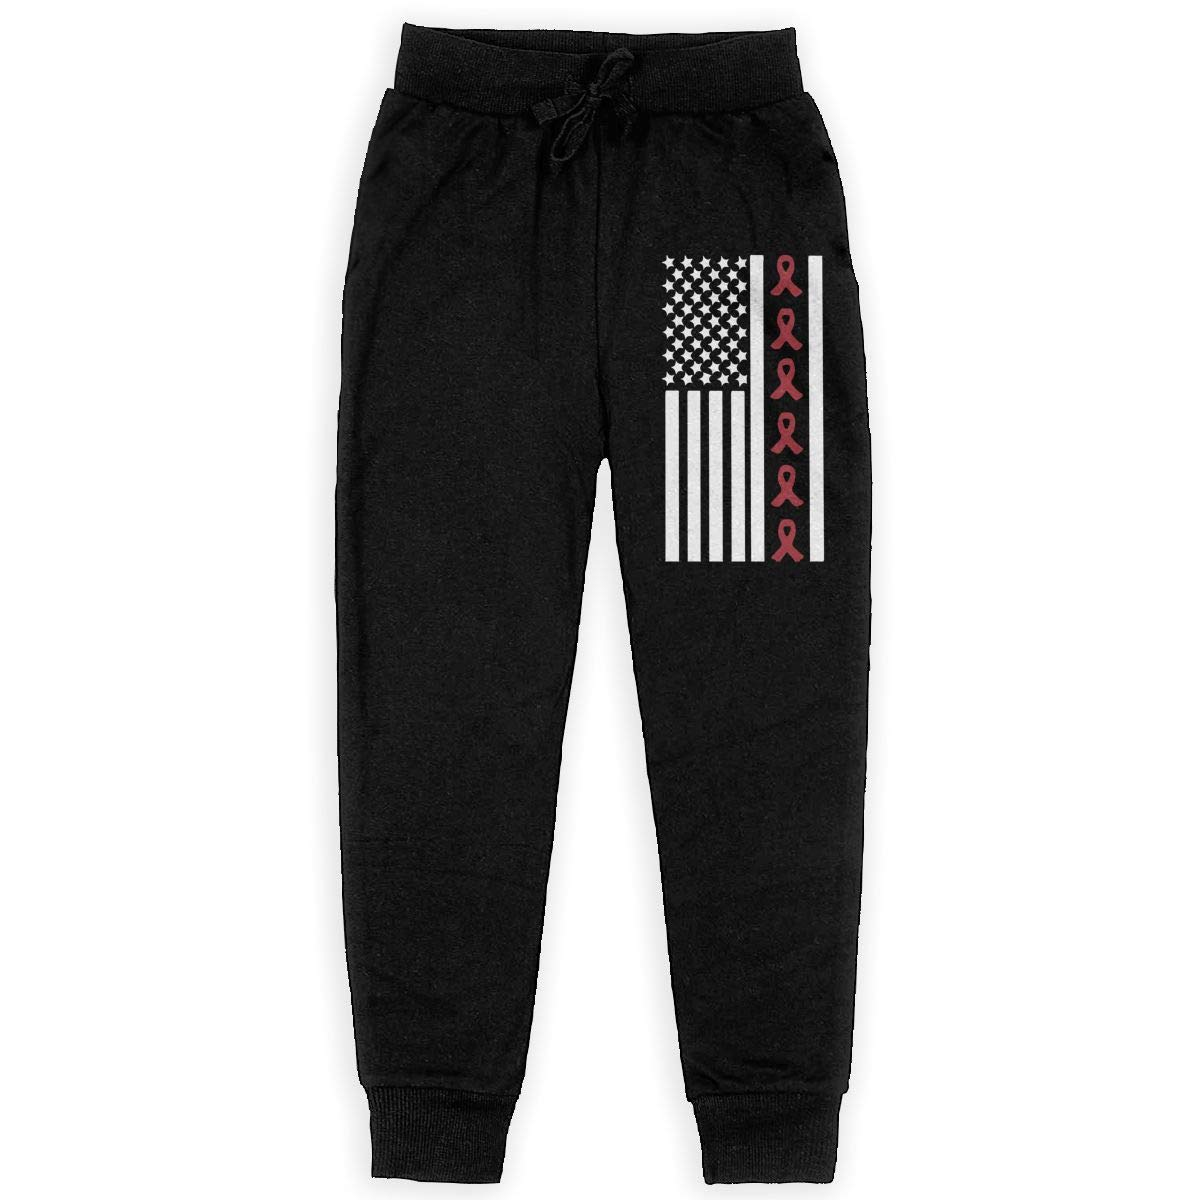 WYZVK22 Ribbon Flag Multiple Myeloma Awareness Soft//Cozy Sweatpants Boys Warm Fleece Active Pants for Teenager Girls